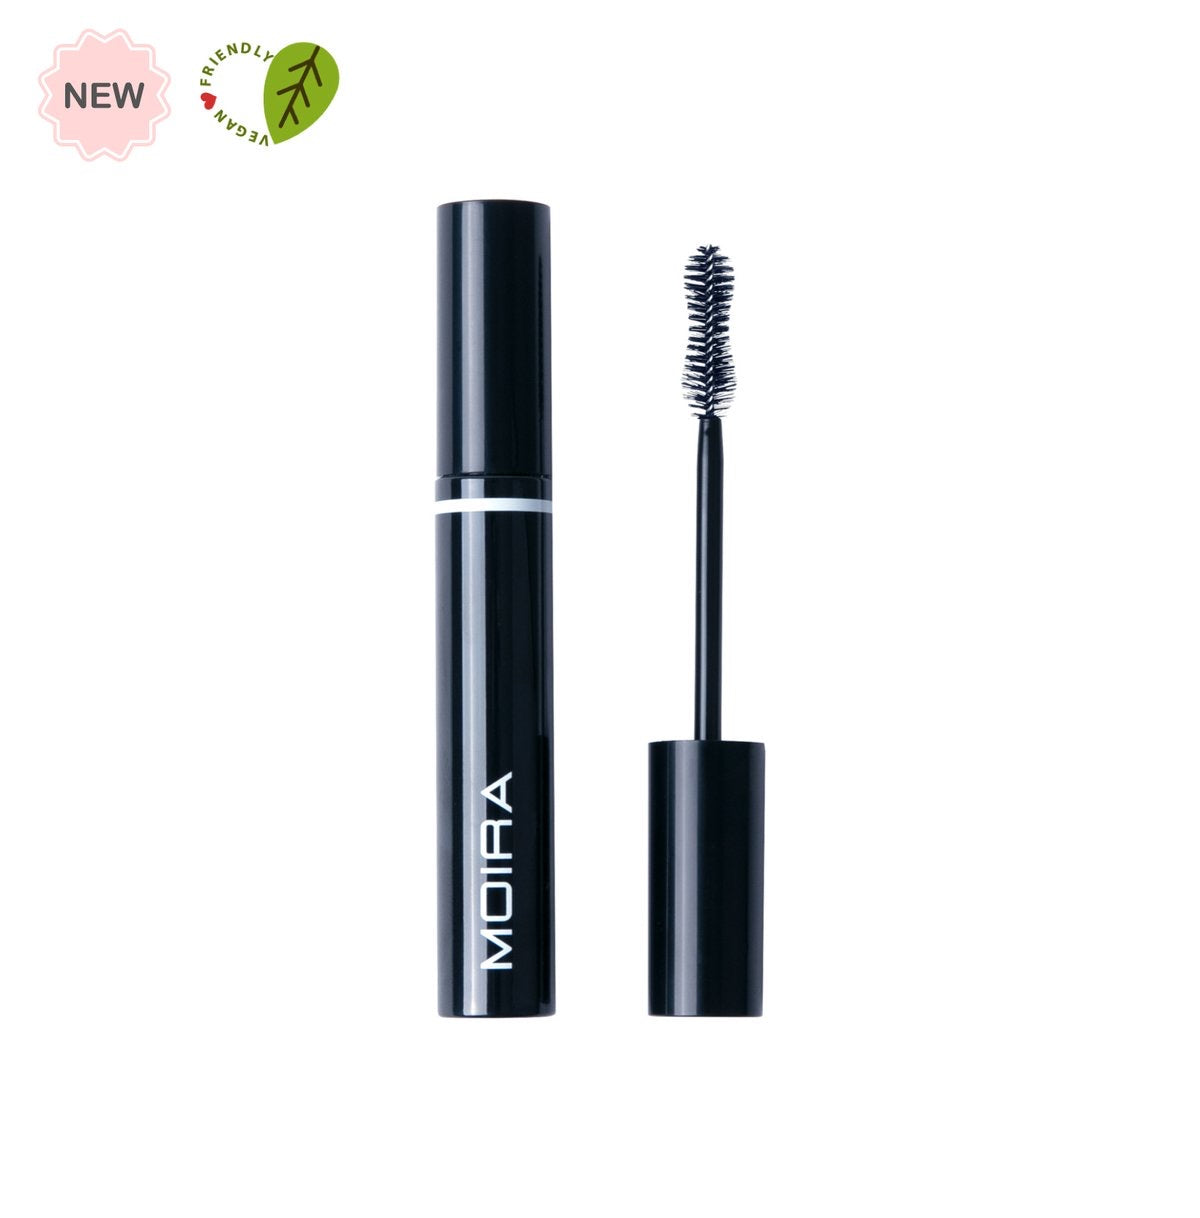 MOIRA VOLUME & LIFTING MASCARA